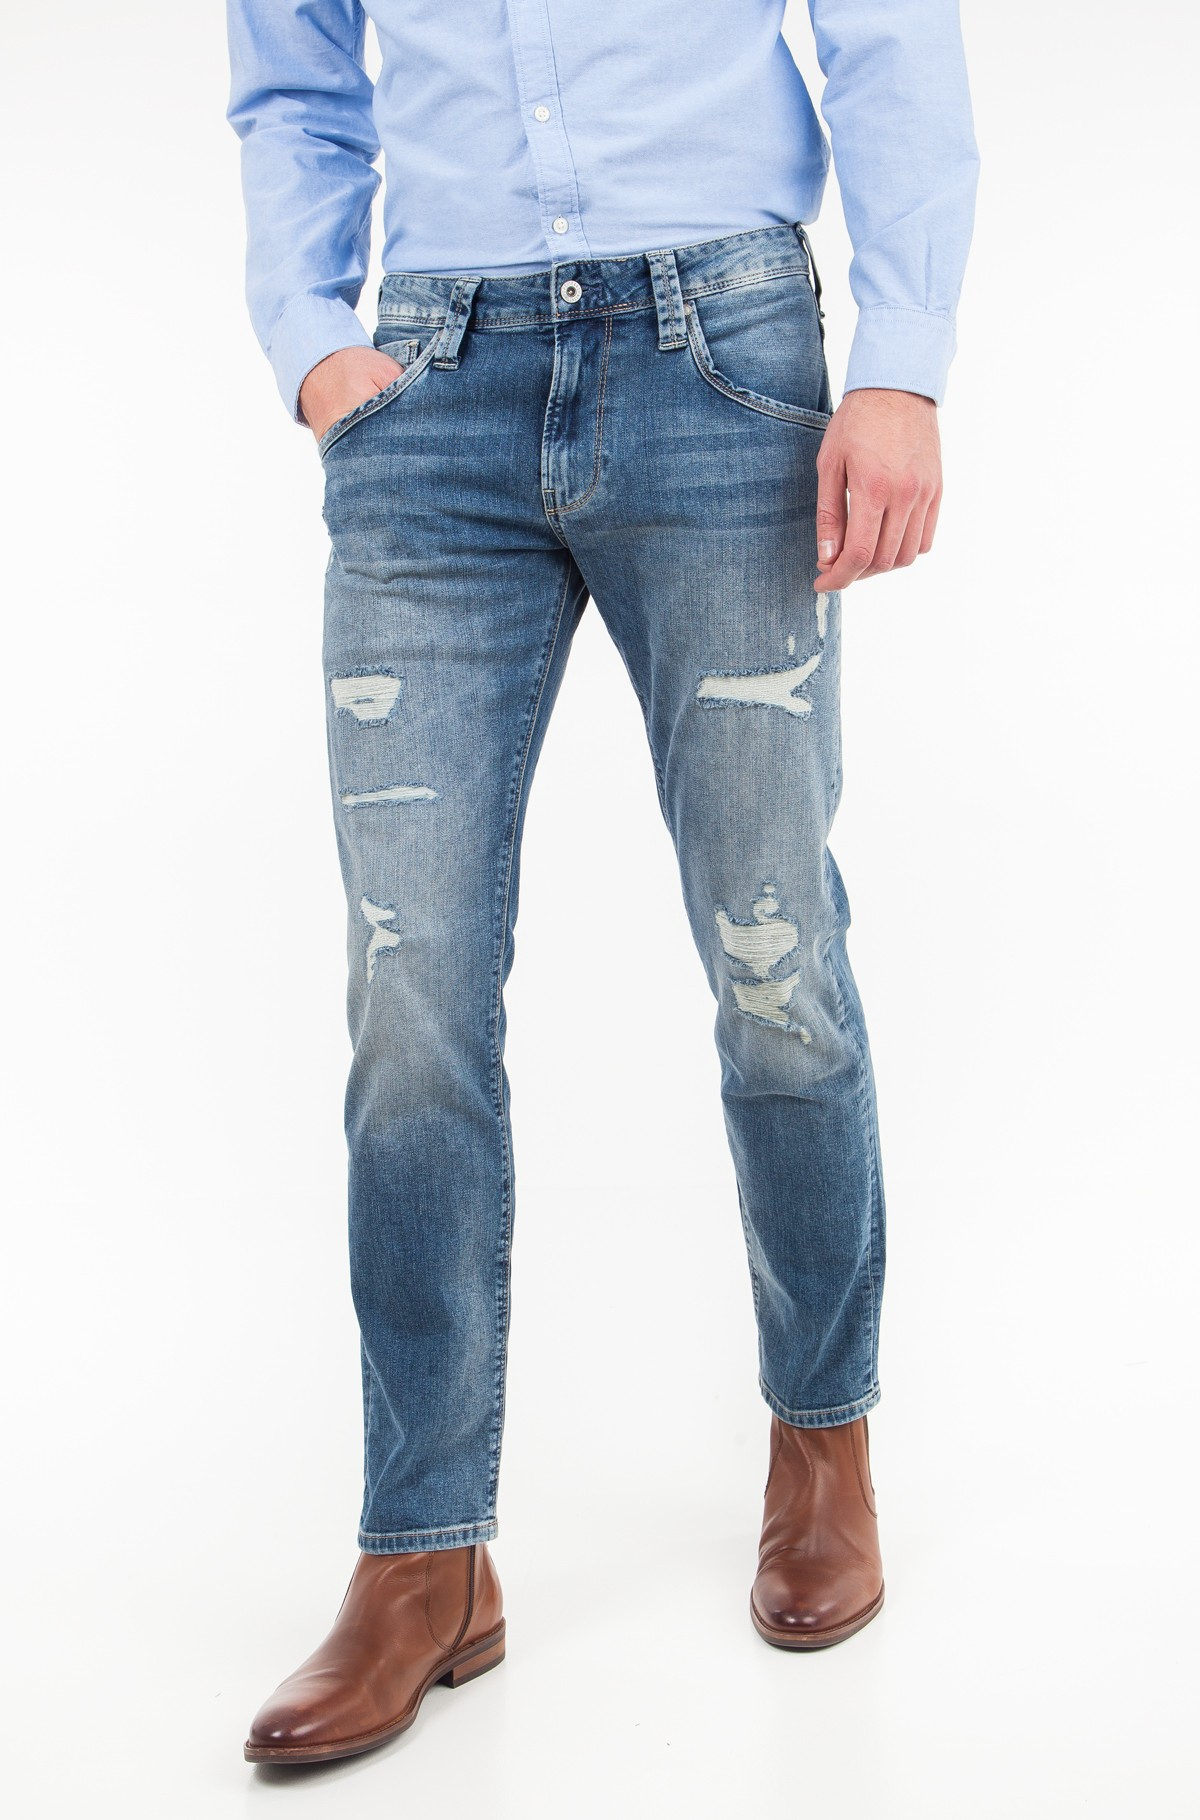 Jeans Zinc/PM201519RB1-full-1